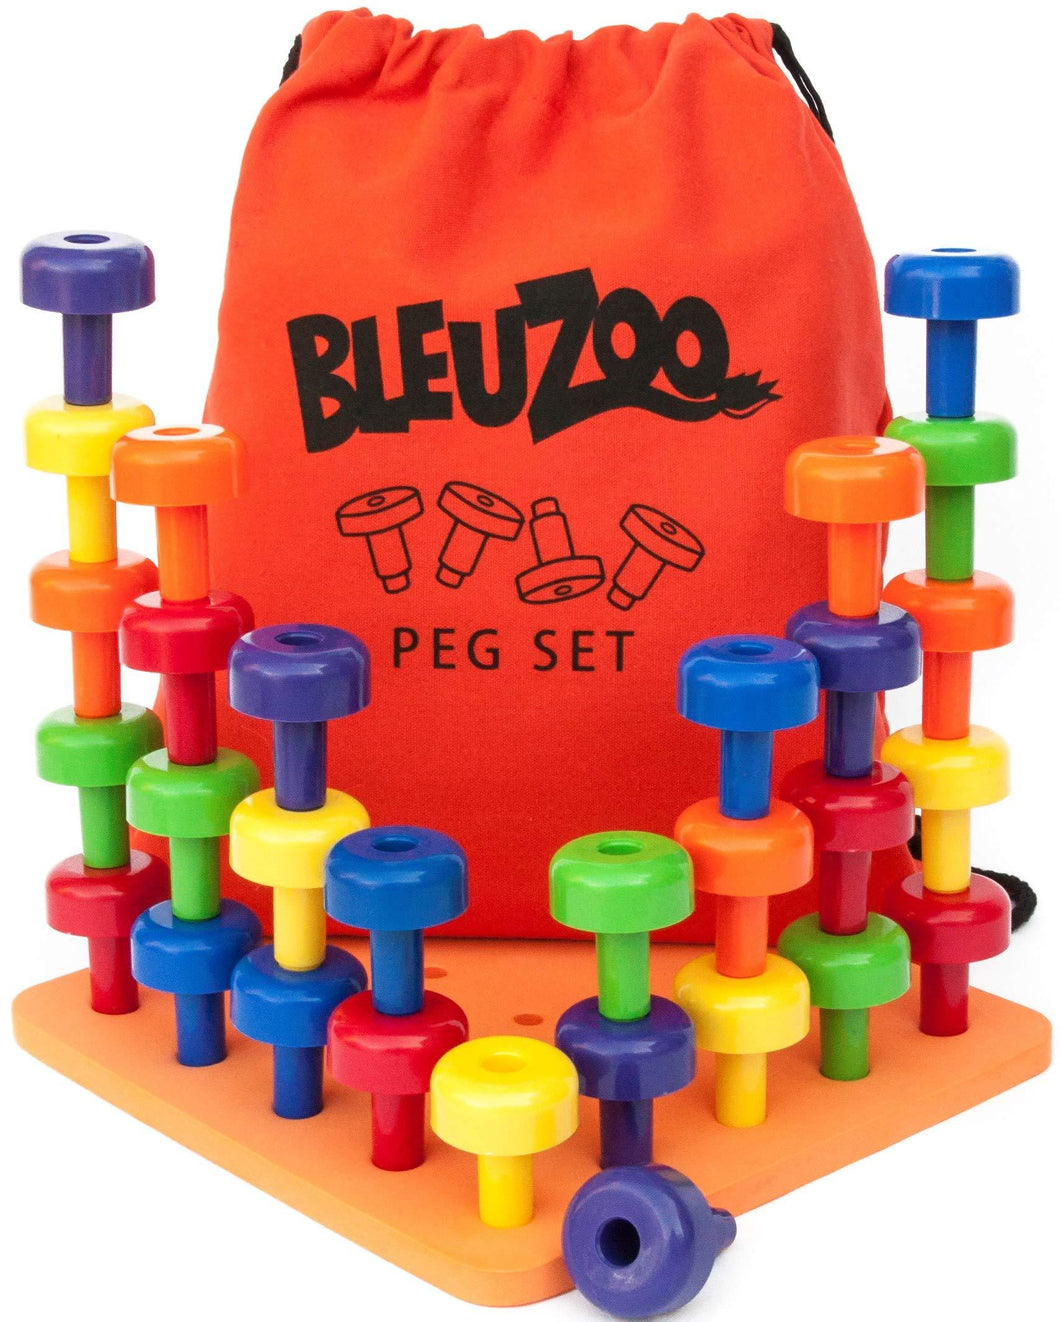 BleuZoo Peg Board Set - Montessori Stacking Toys For Toddlers | Fine Motor Skills, STEM, Autism, Educational, Speech Occupational Therapy, Colors Building - Preschool Activities | 30 Pegs, Board & Bag